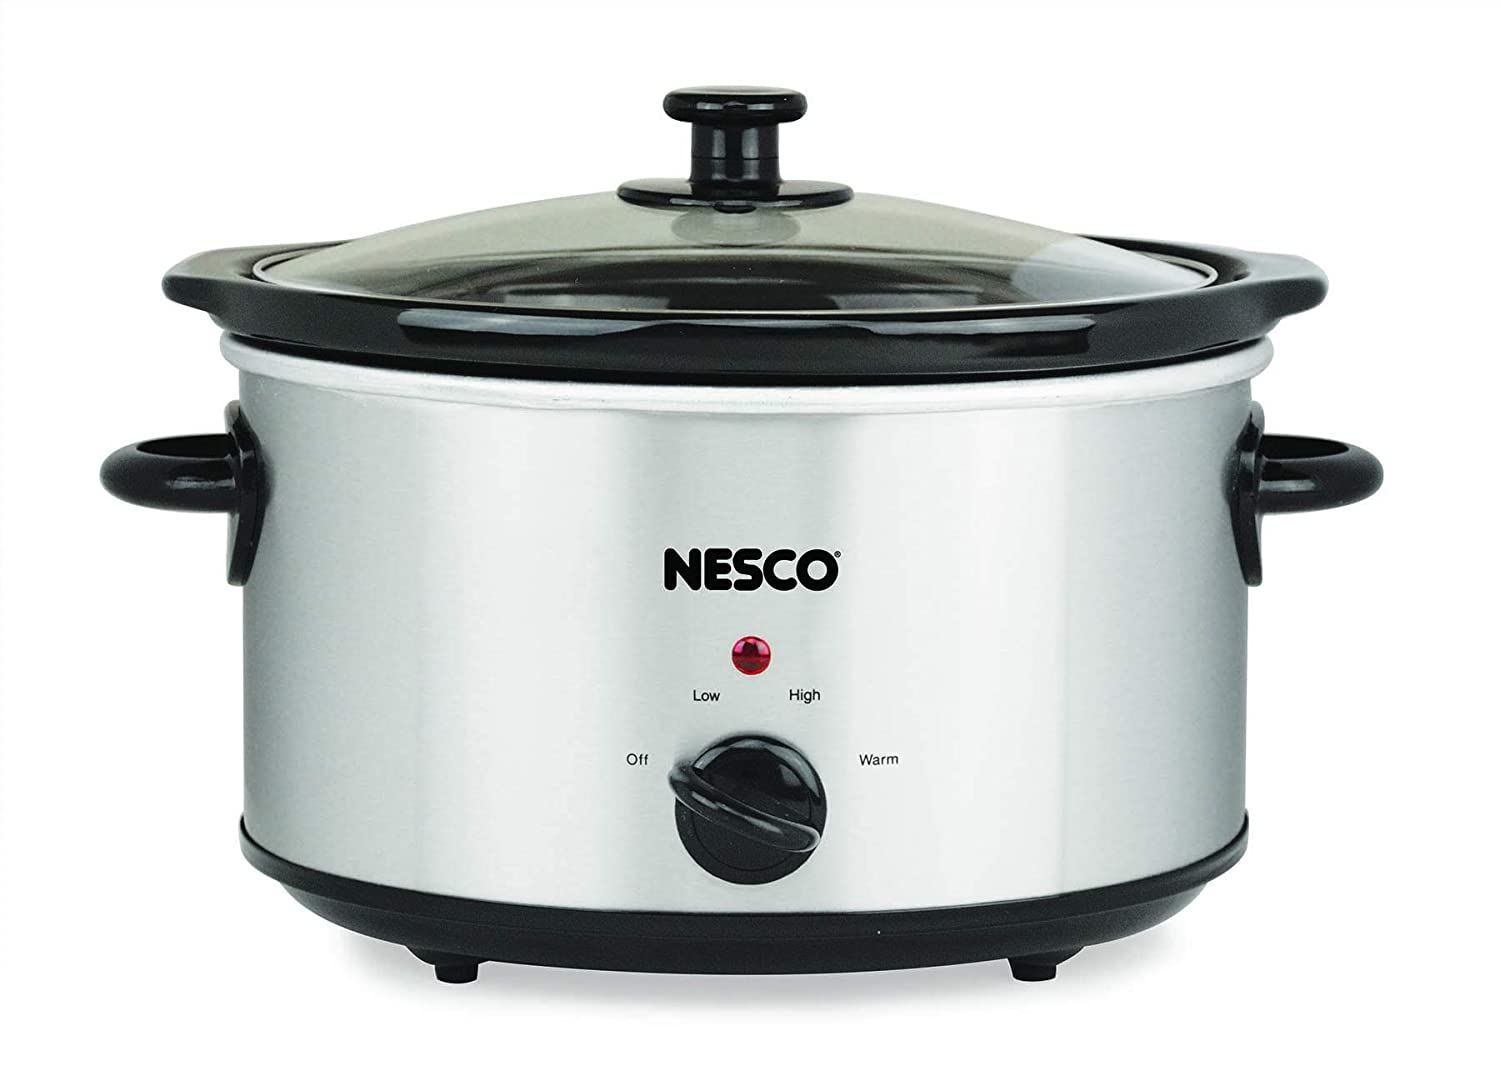 Nesco SC-4-25 4 Qt. Oval Analog Stainless Steel Slow Cooker 4 Quart Silver